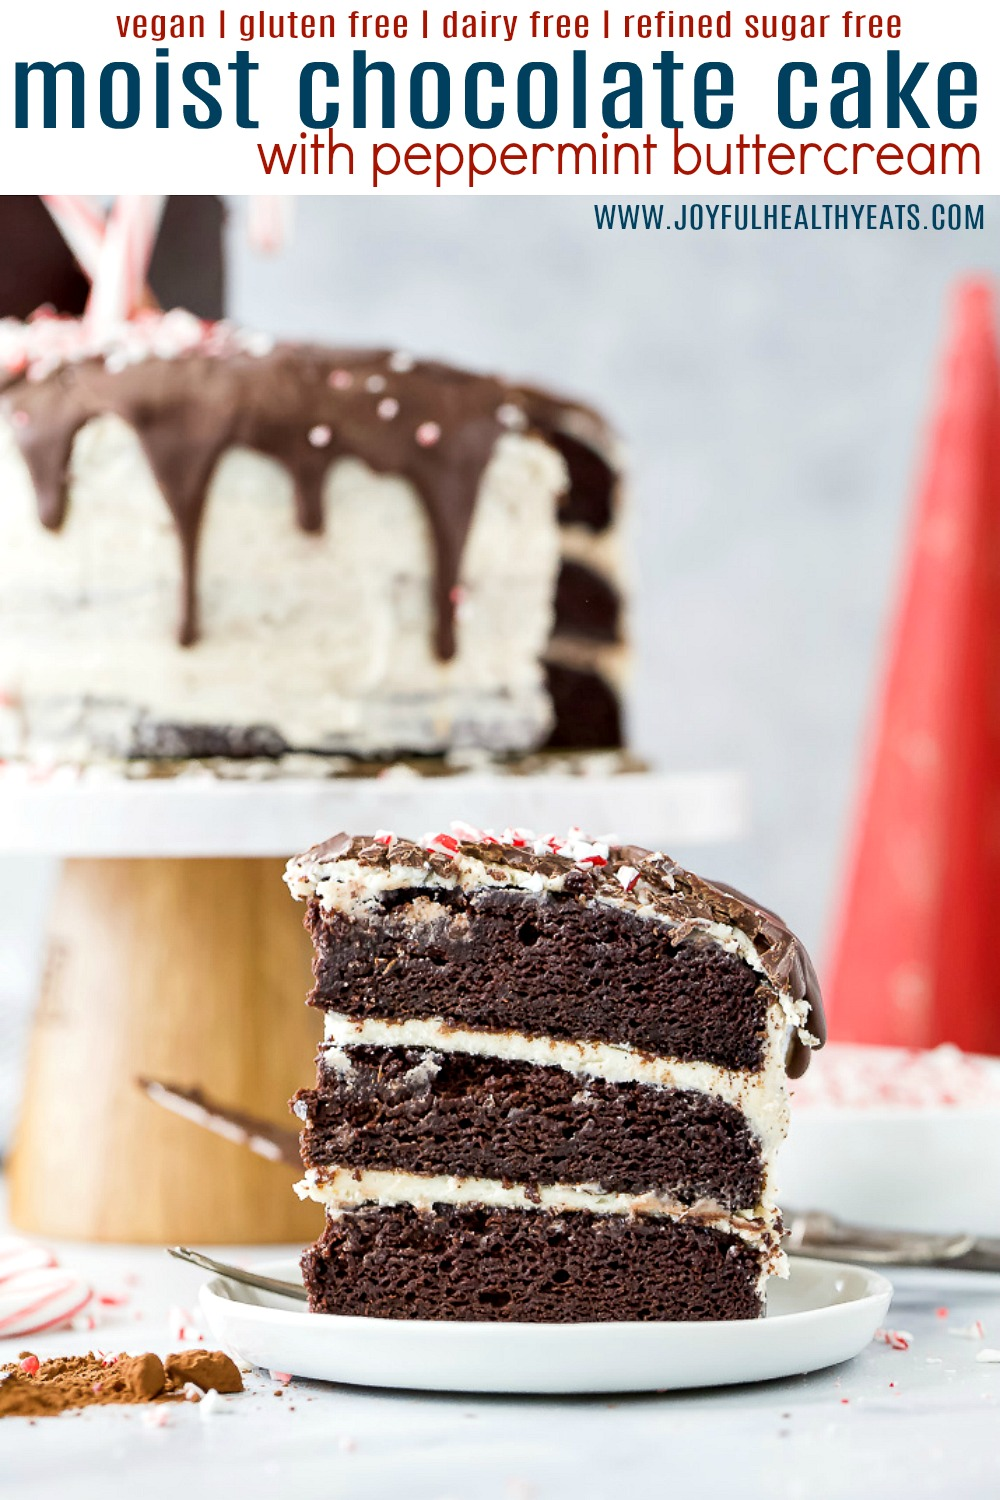 pinteres image for vegan chocolate cake with peppermint buttercream